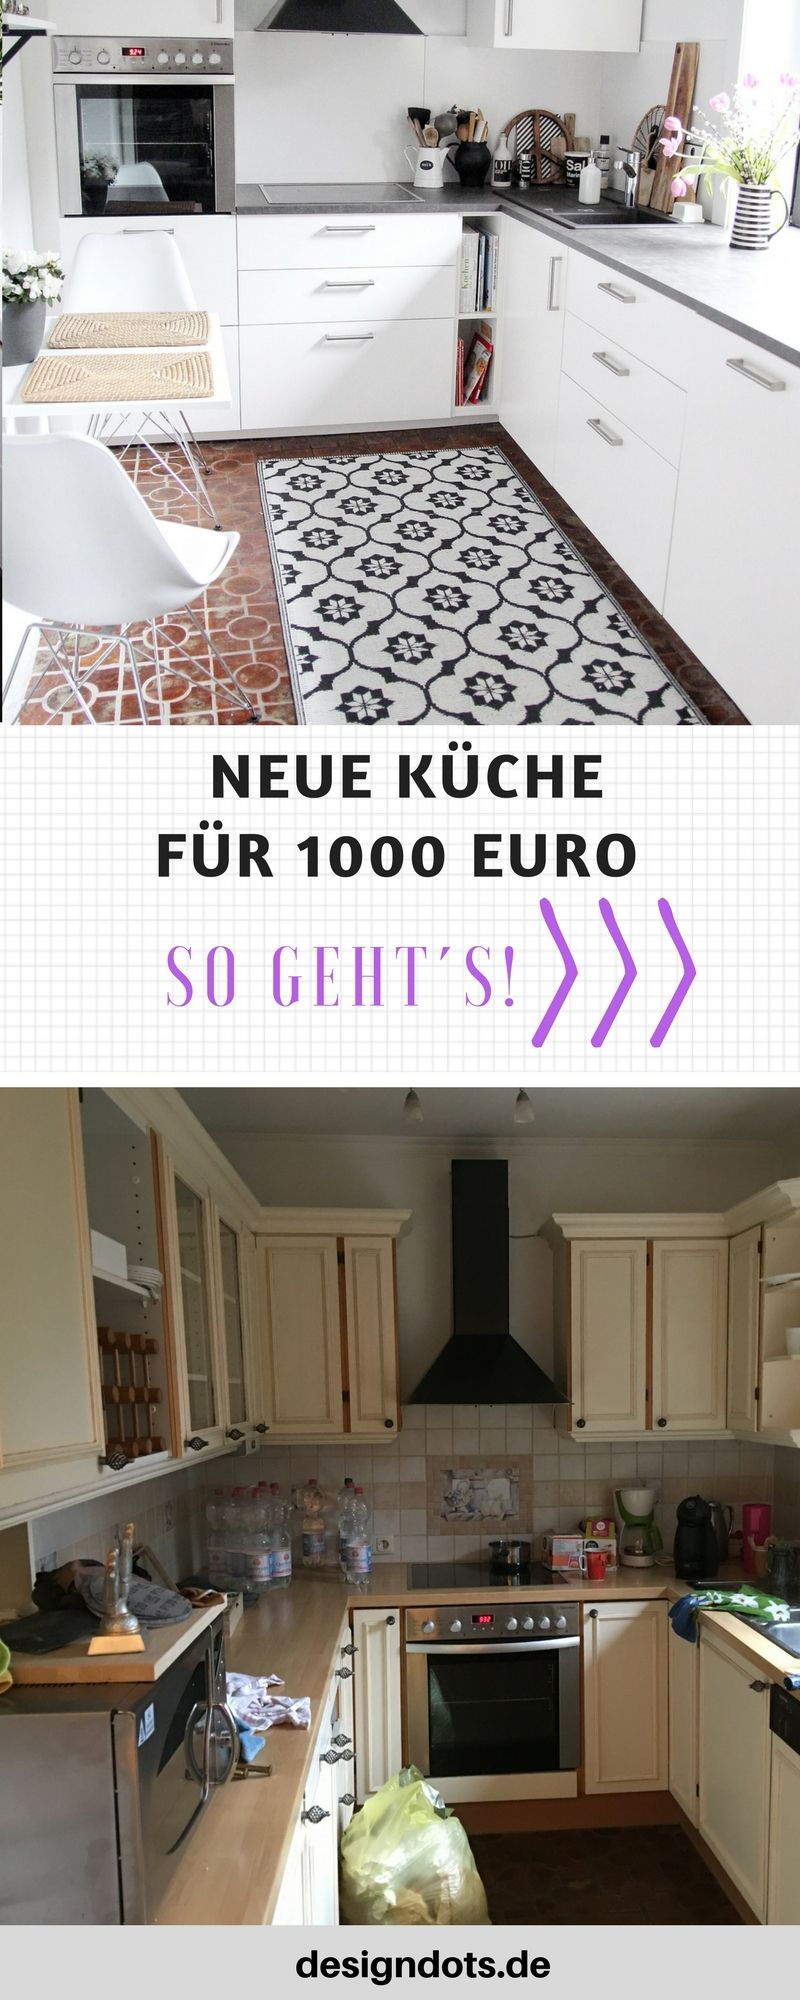 neue k che f r 1000 euro in 2018 renovieren pinterest haus renovieren haus und neue k che. Black Bedroom Furniture Sets. Home Design Ideas